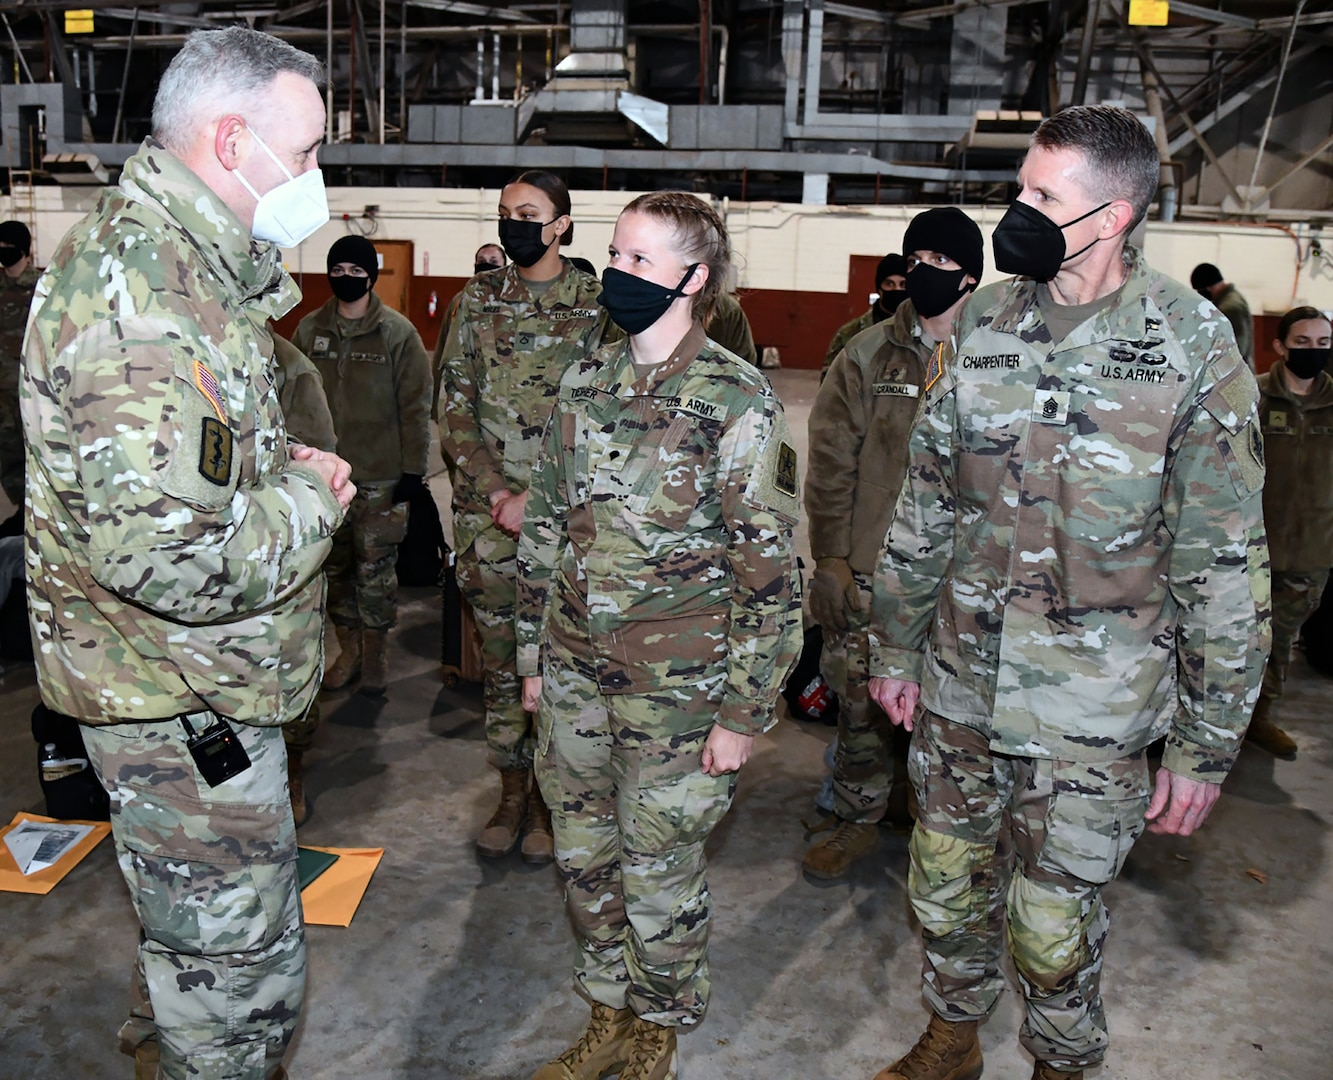 Spc. Angela Thresher (center), a 68W Combat Medic who was identified as the 10,000th Soldier to depart from the U.S. Army Medical Center of Excellence in a controlled manner as part of the COVID-19 pandemic, speaks with Maj. Gen. Dennis LeMaster, MEDCoE commanding general and MEDCoE Command Sgt. Maj. Clark Charpentier.